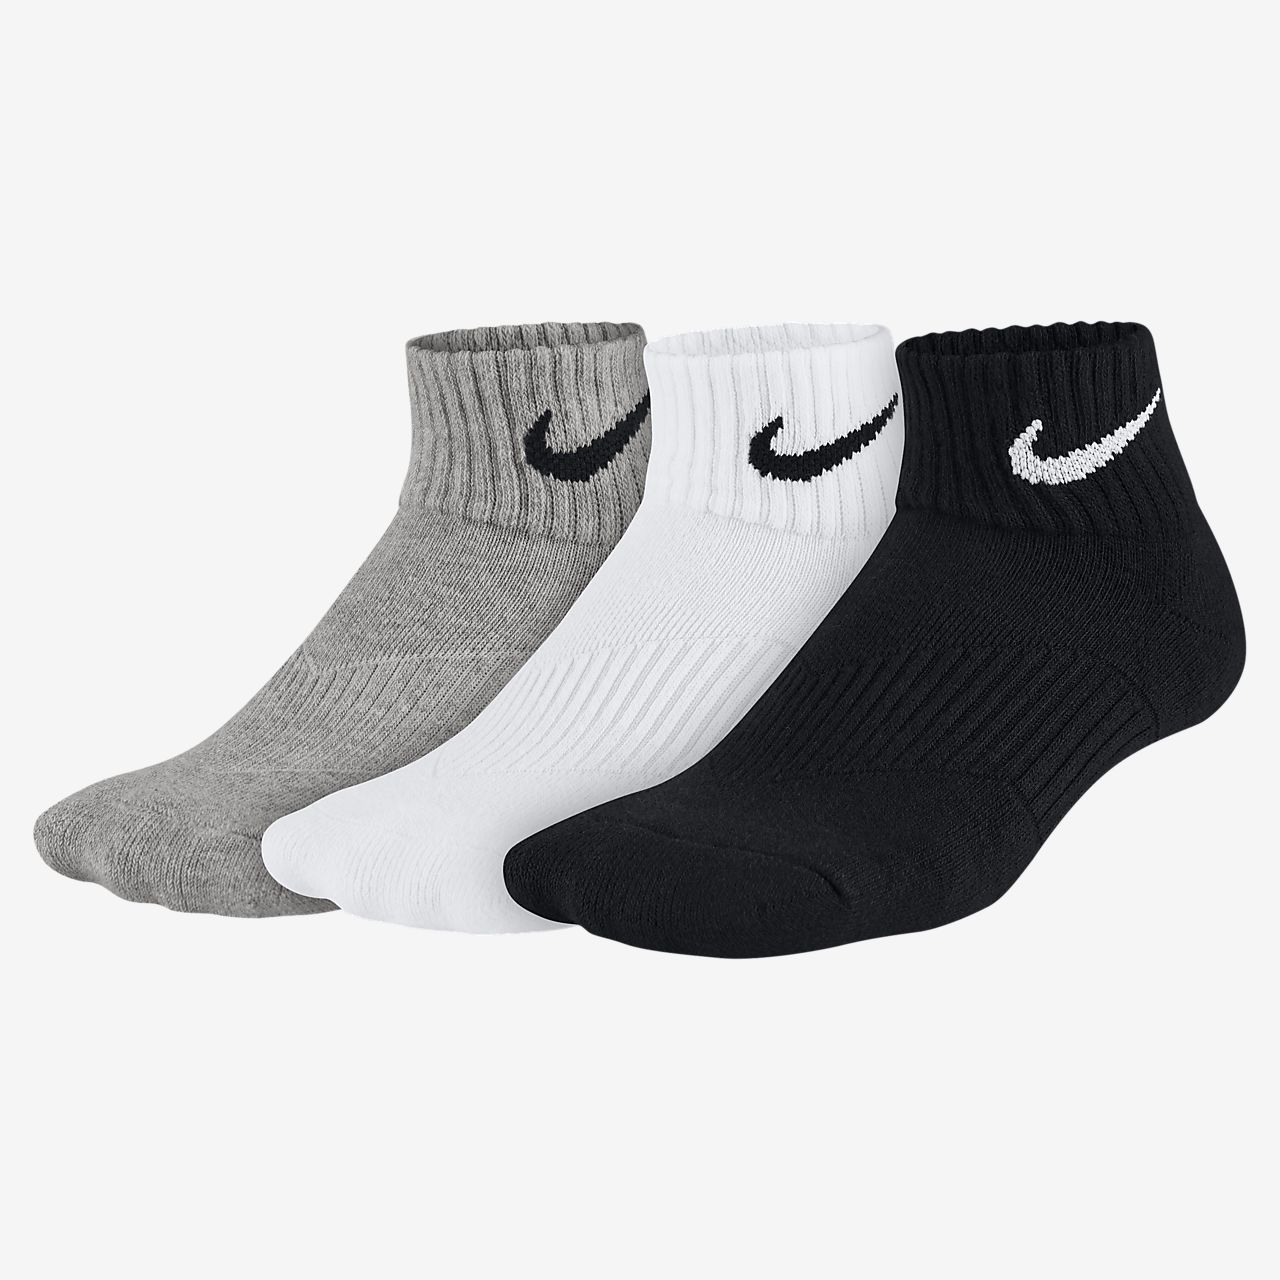 Nike Cotton Cushion Quarter Calcetines (3 pares)